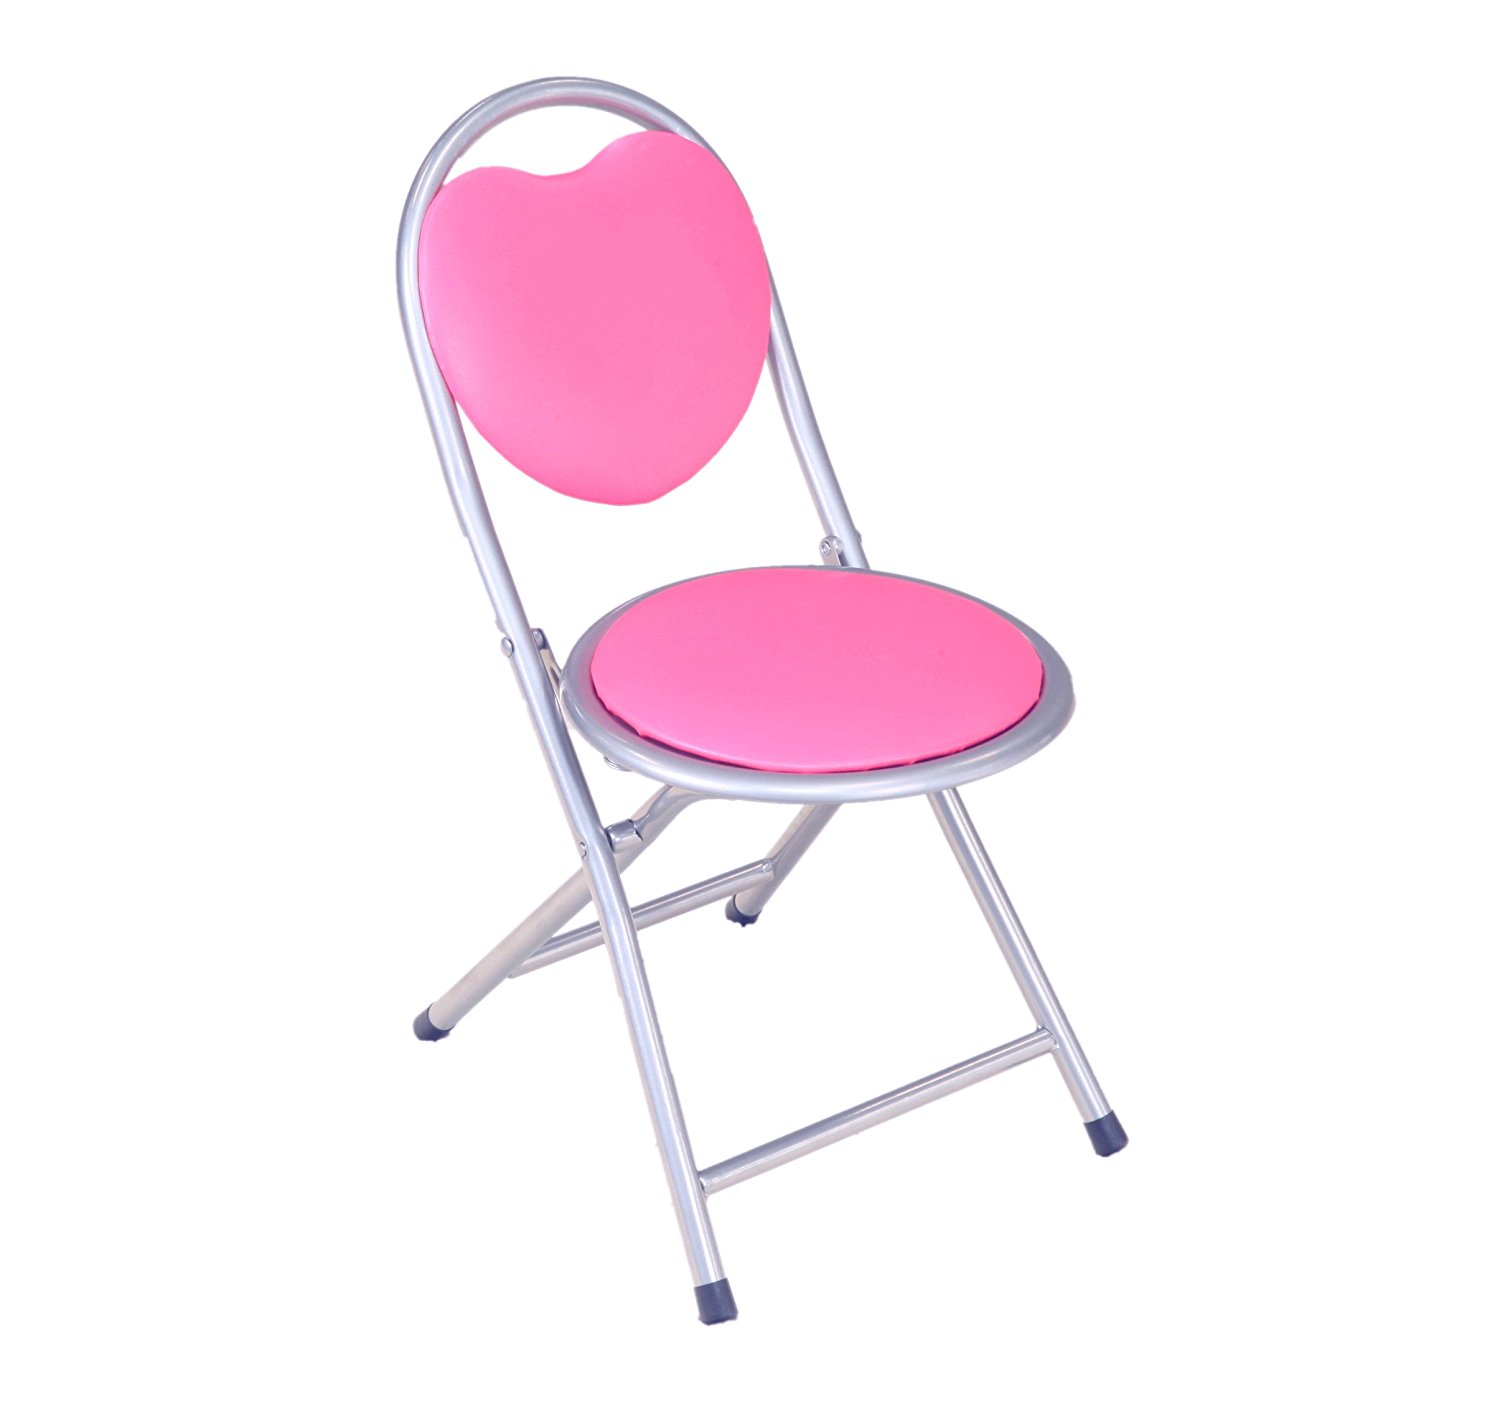 Frenchi Home Furnishing Kids Metal Folding Chair Pink – Party Supply Factory